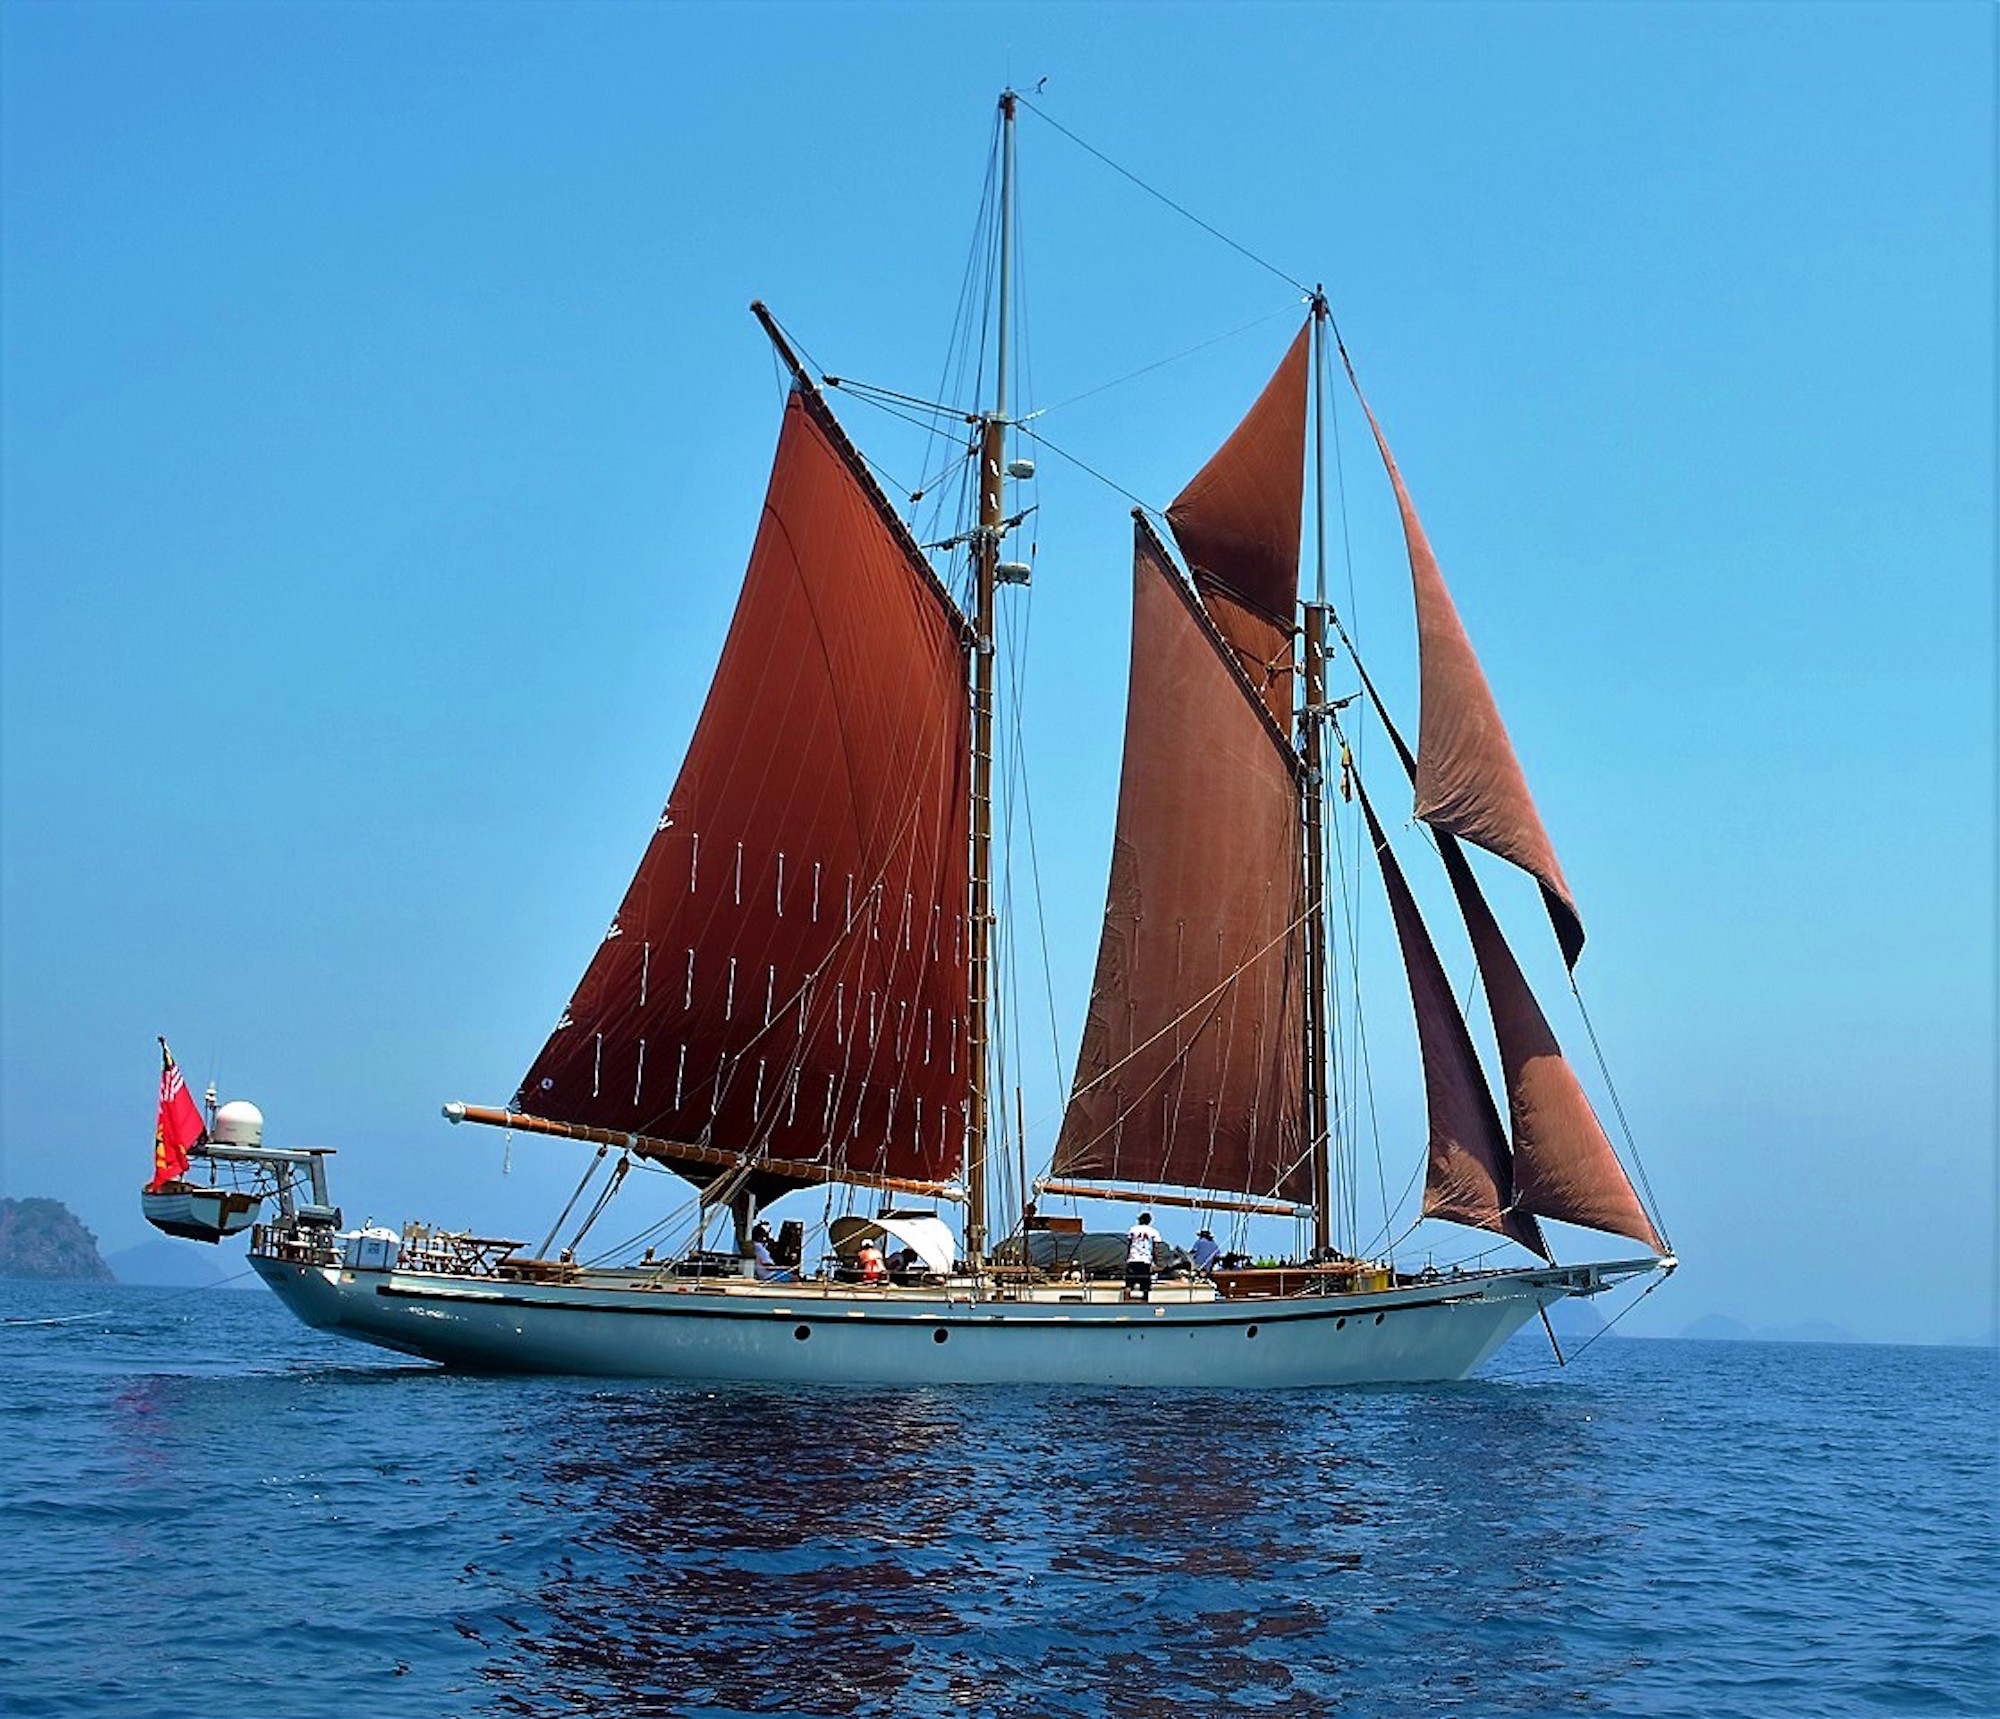 Dallinghoo_blue water and red sail charter holiday in Mergui Myanmar_M(1).jpg